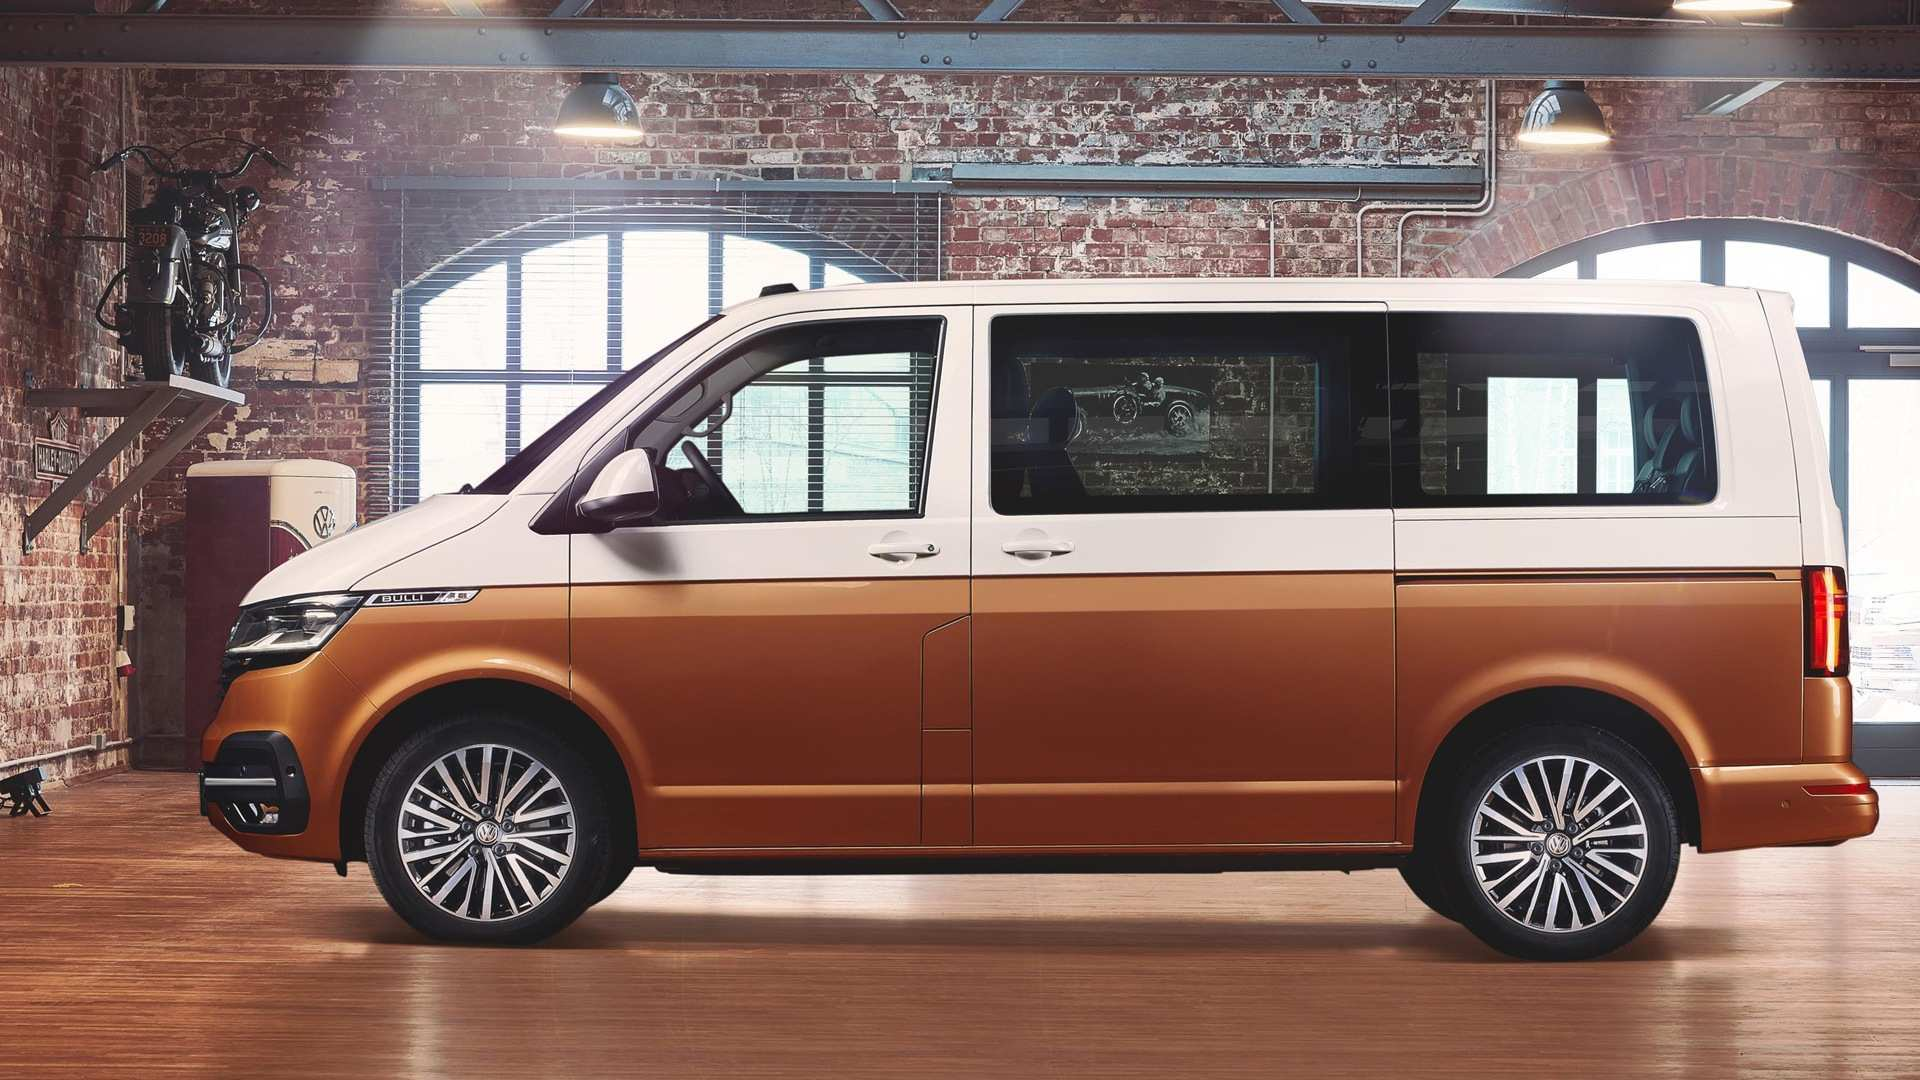 79 Best 2020 Volkswagen Transporter Review And Release Date